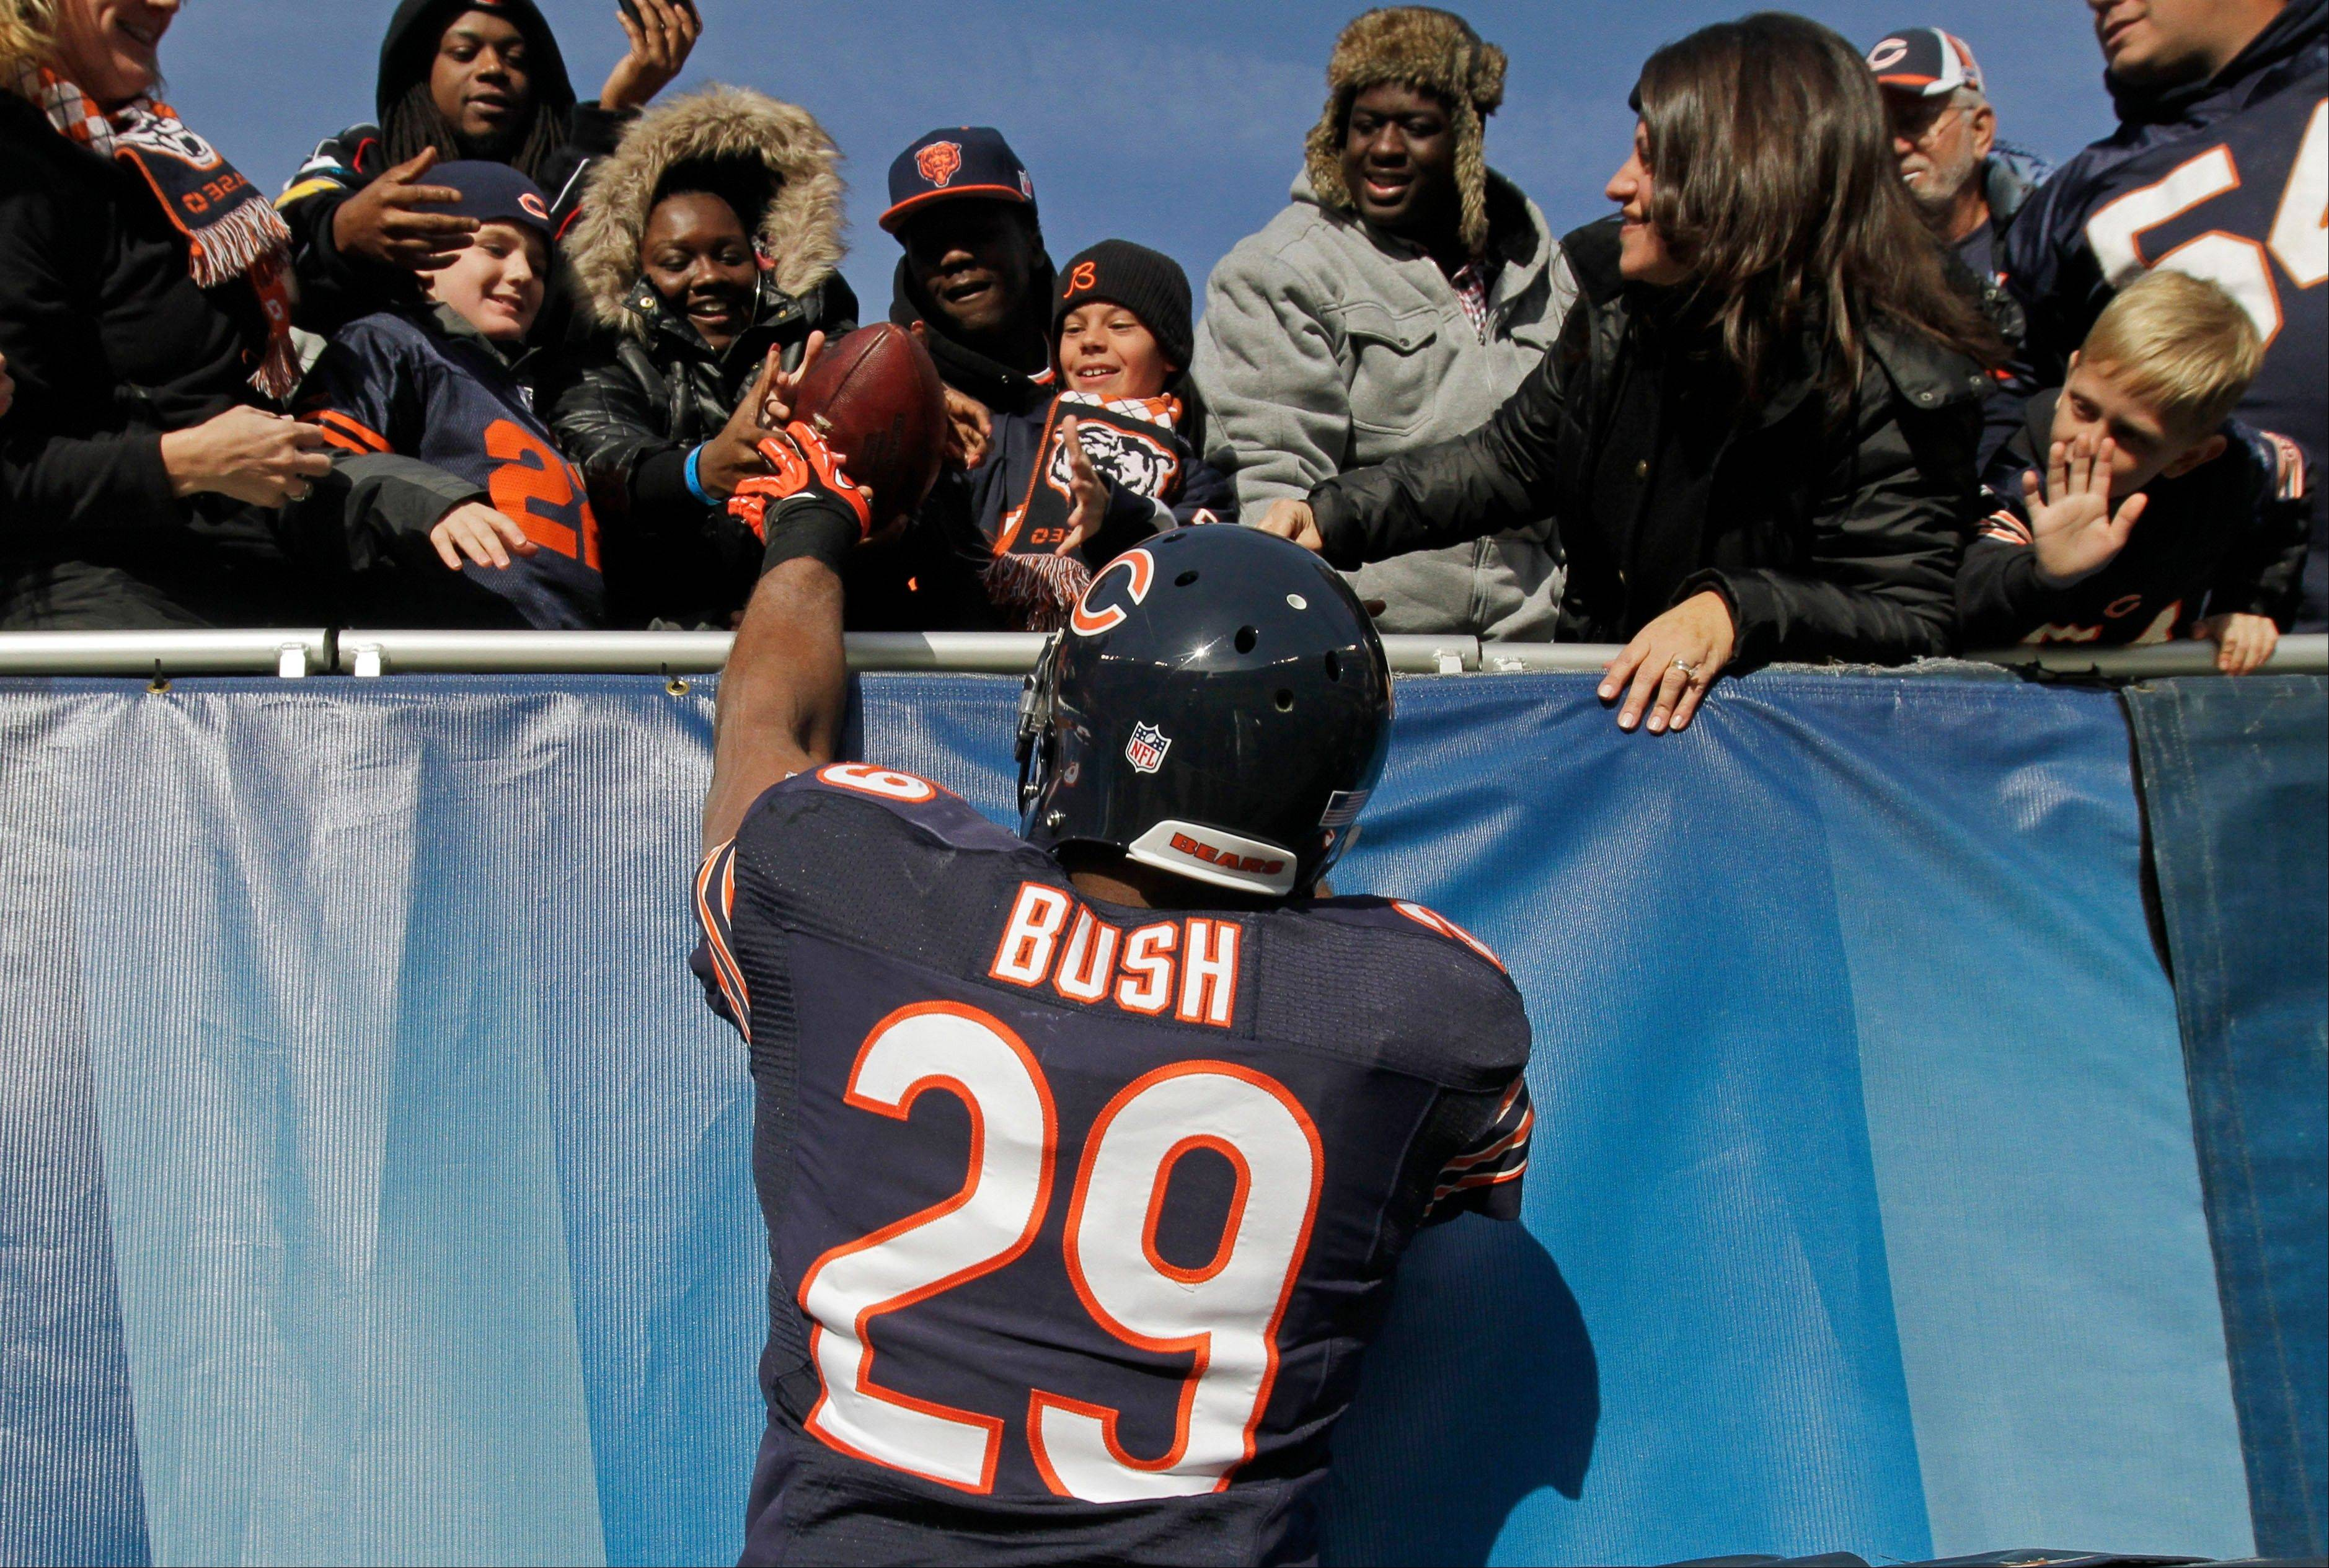 Chicago Bears running back Michael Bush (29) gives a ball to a fan after making a touchdown run in the first half of an NFL football game against the Minnesota Vikings in Chicago, Sunday.